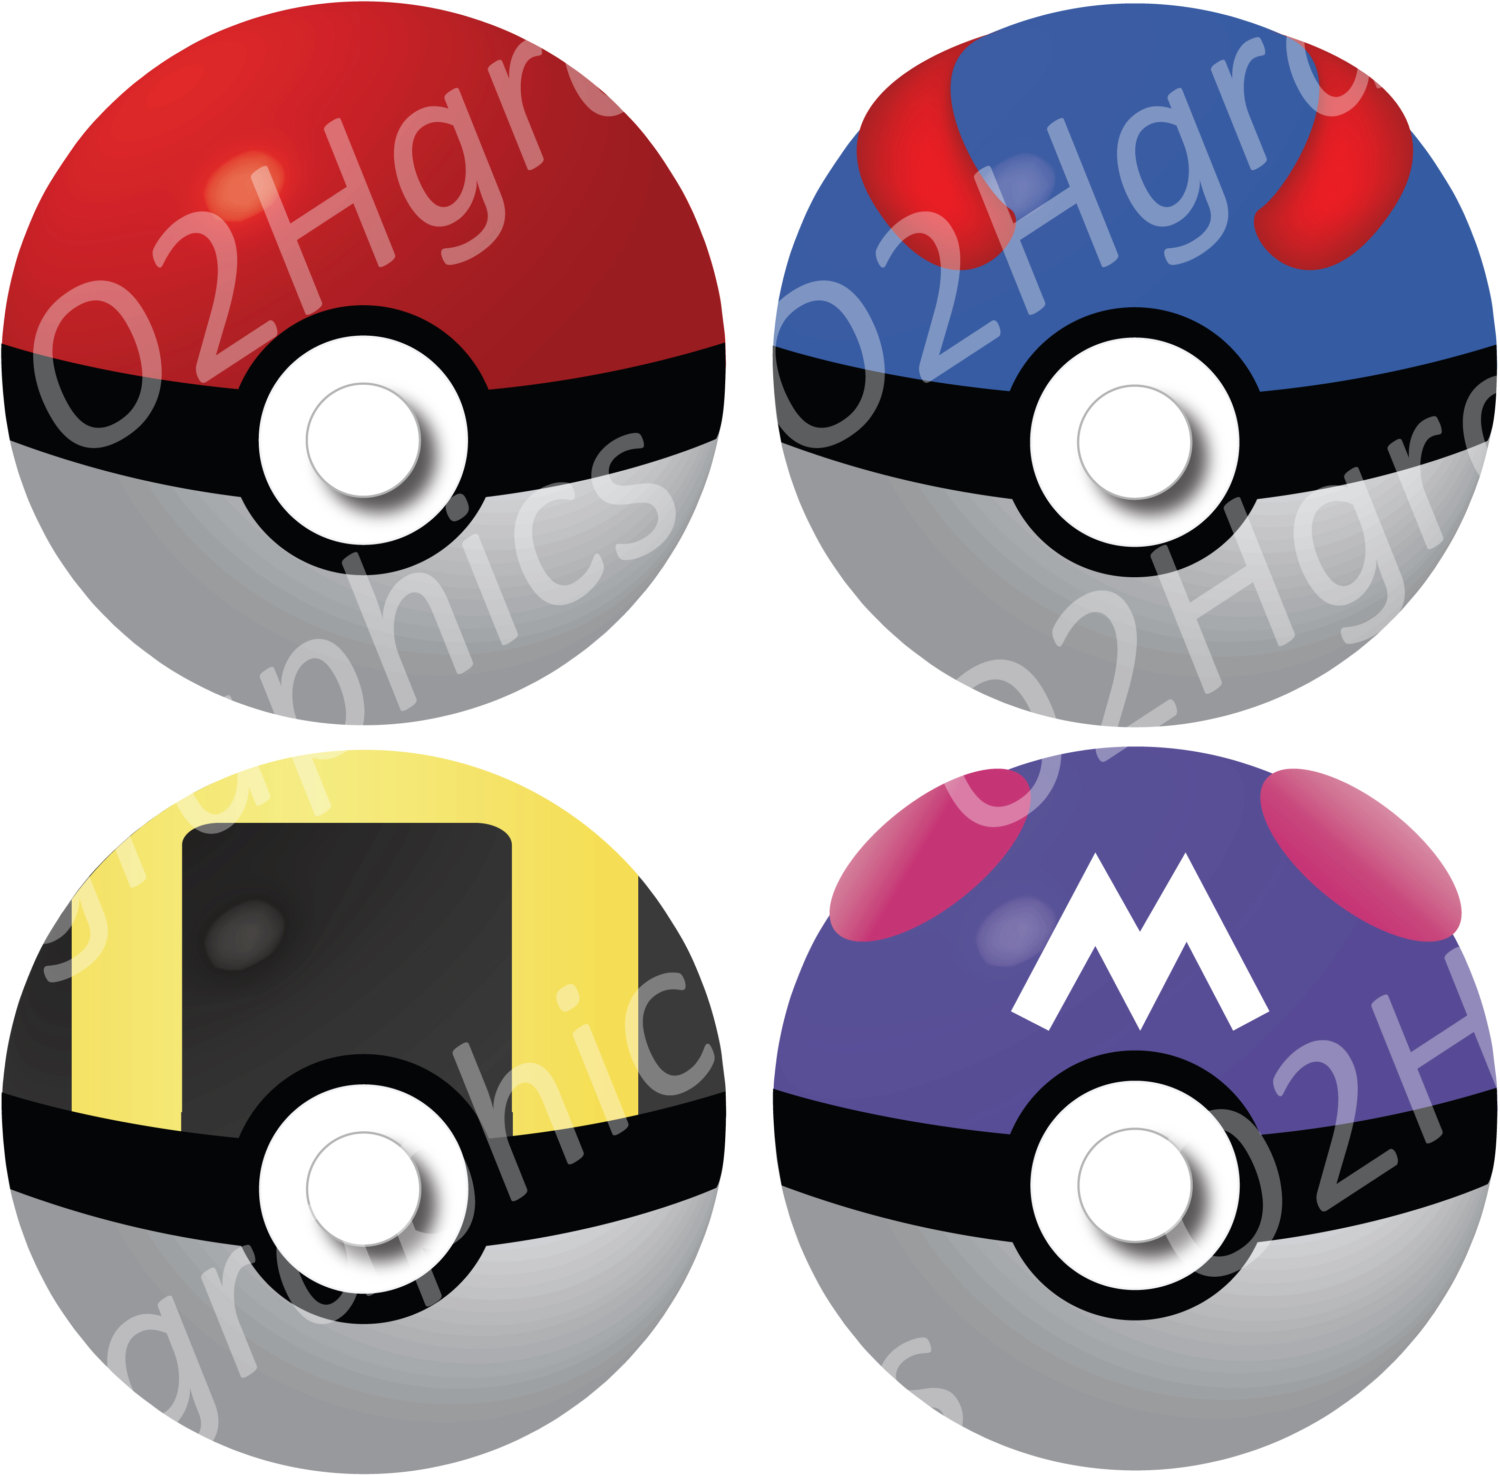 Pokeball clipart pokemon xy. Free download best on